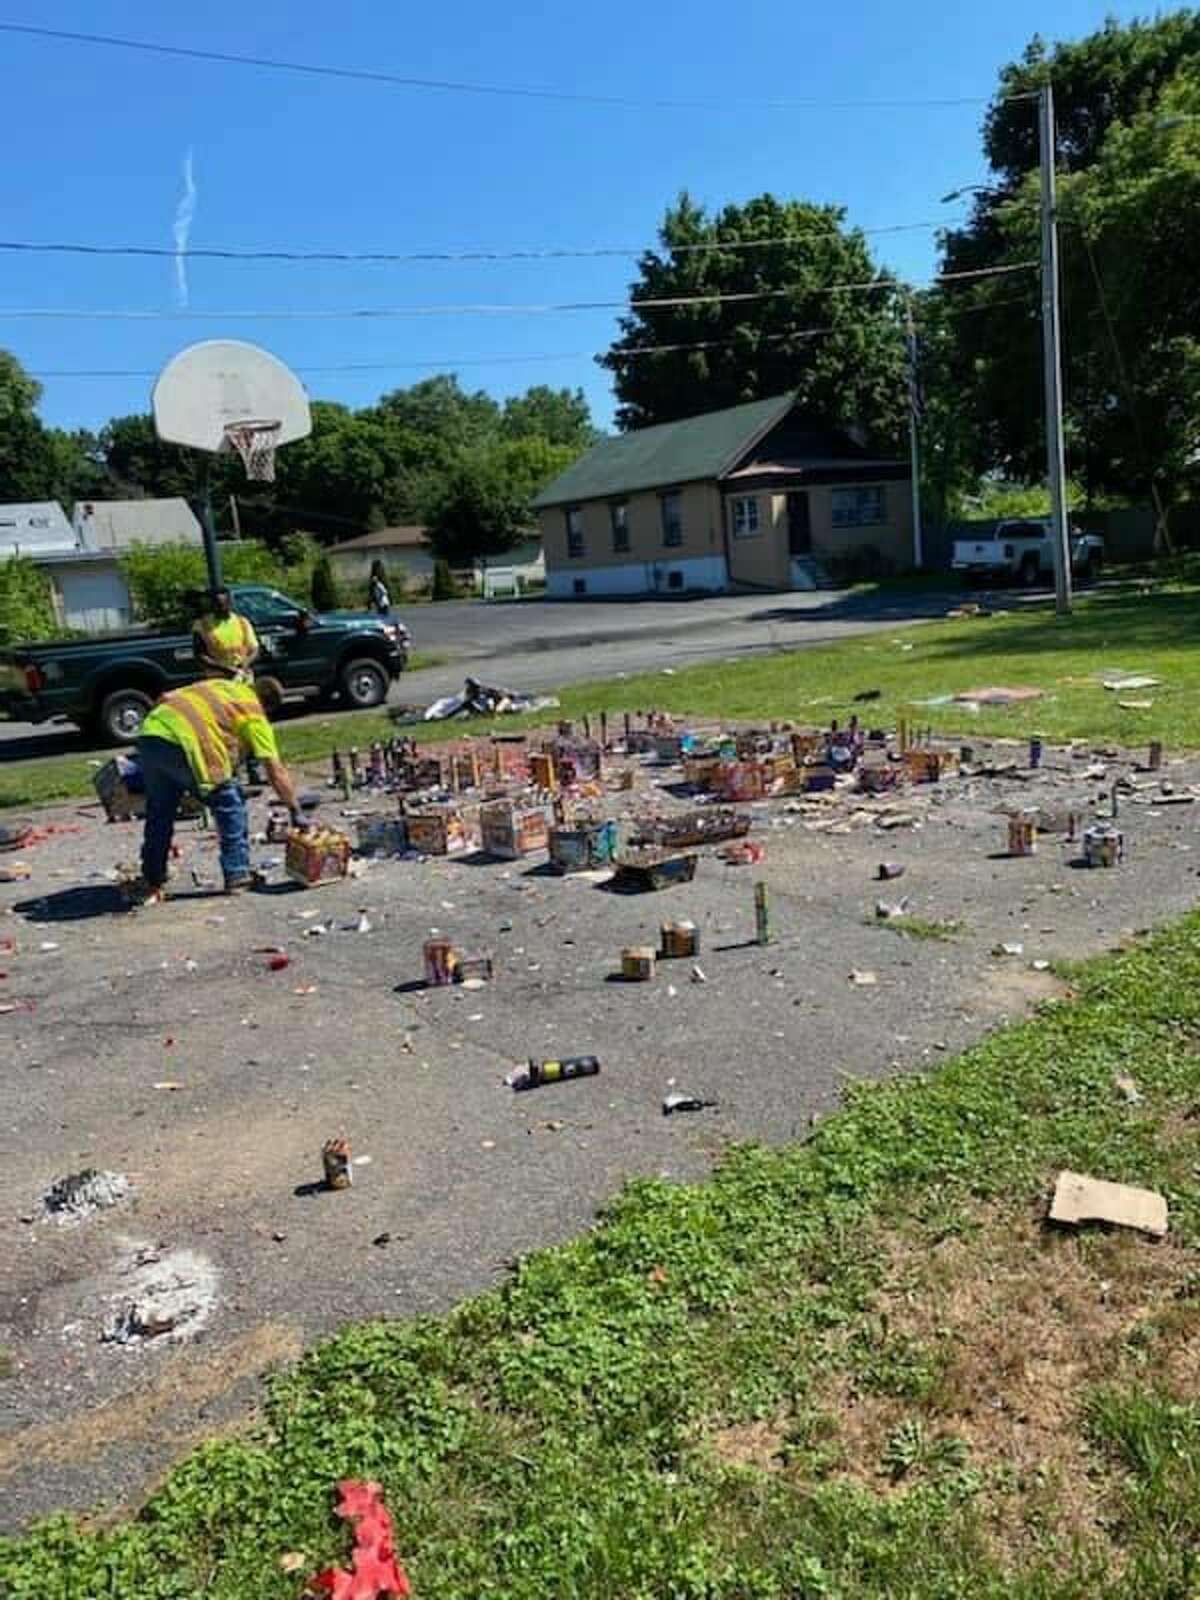 Albany Mayor Kathy Sheehan shared photos of the fireworks left behind after massive amounts were shot off by residents July 4, 2020.